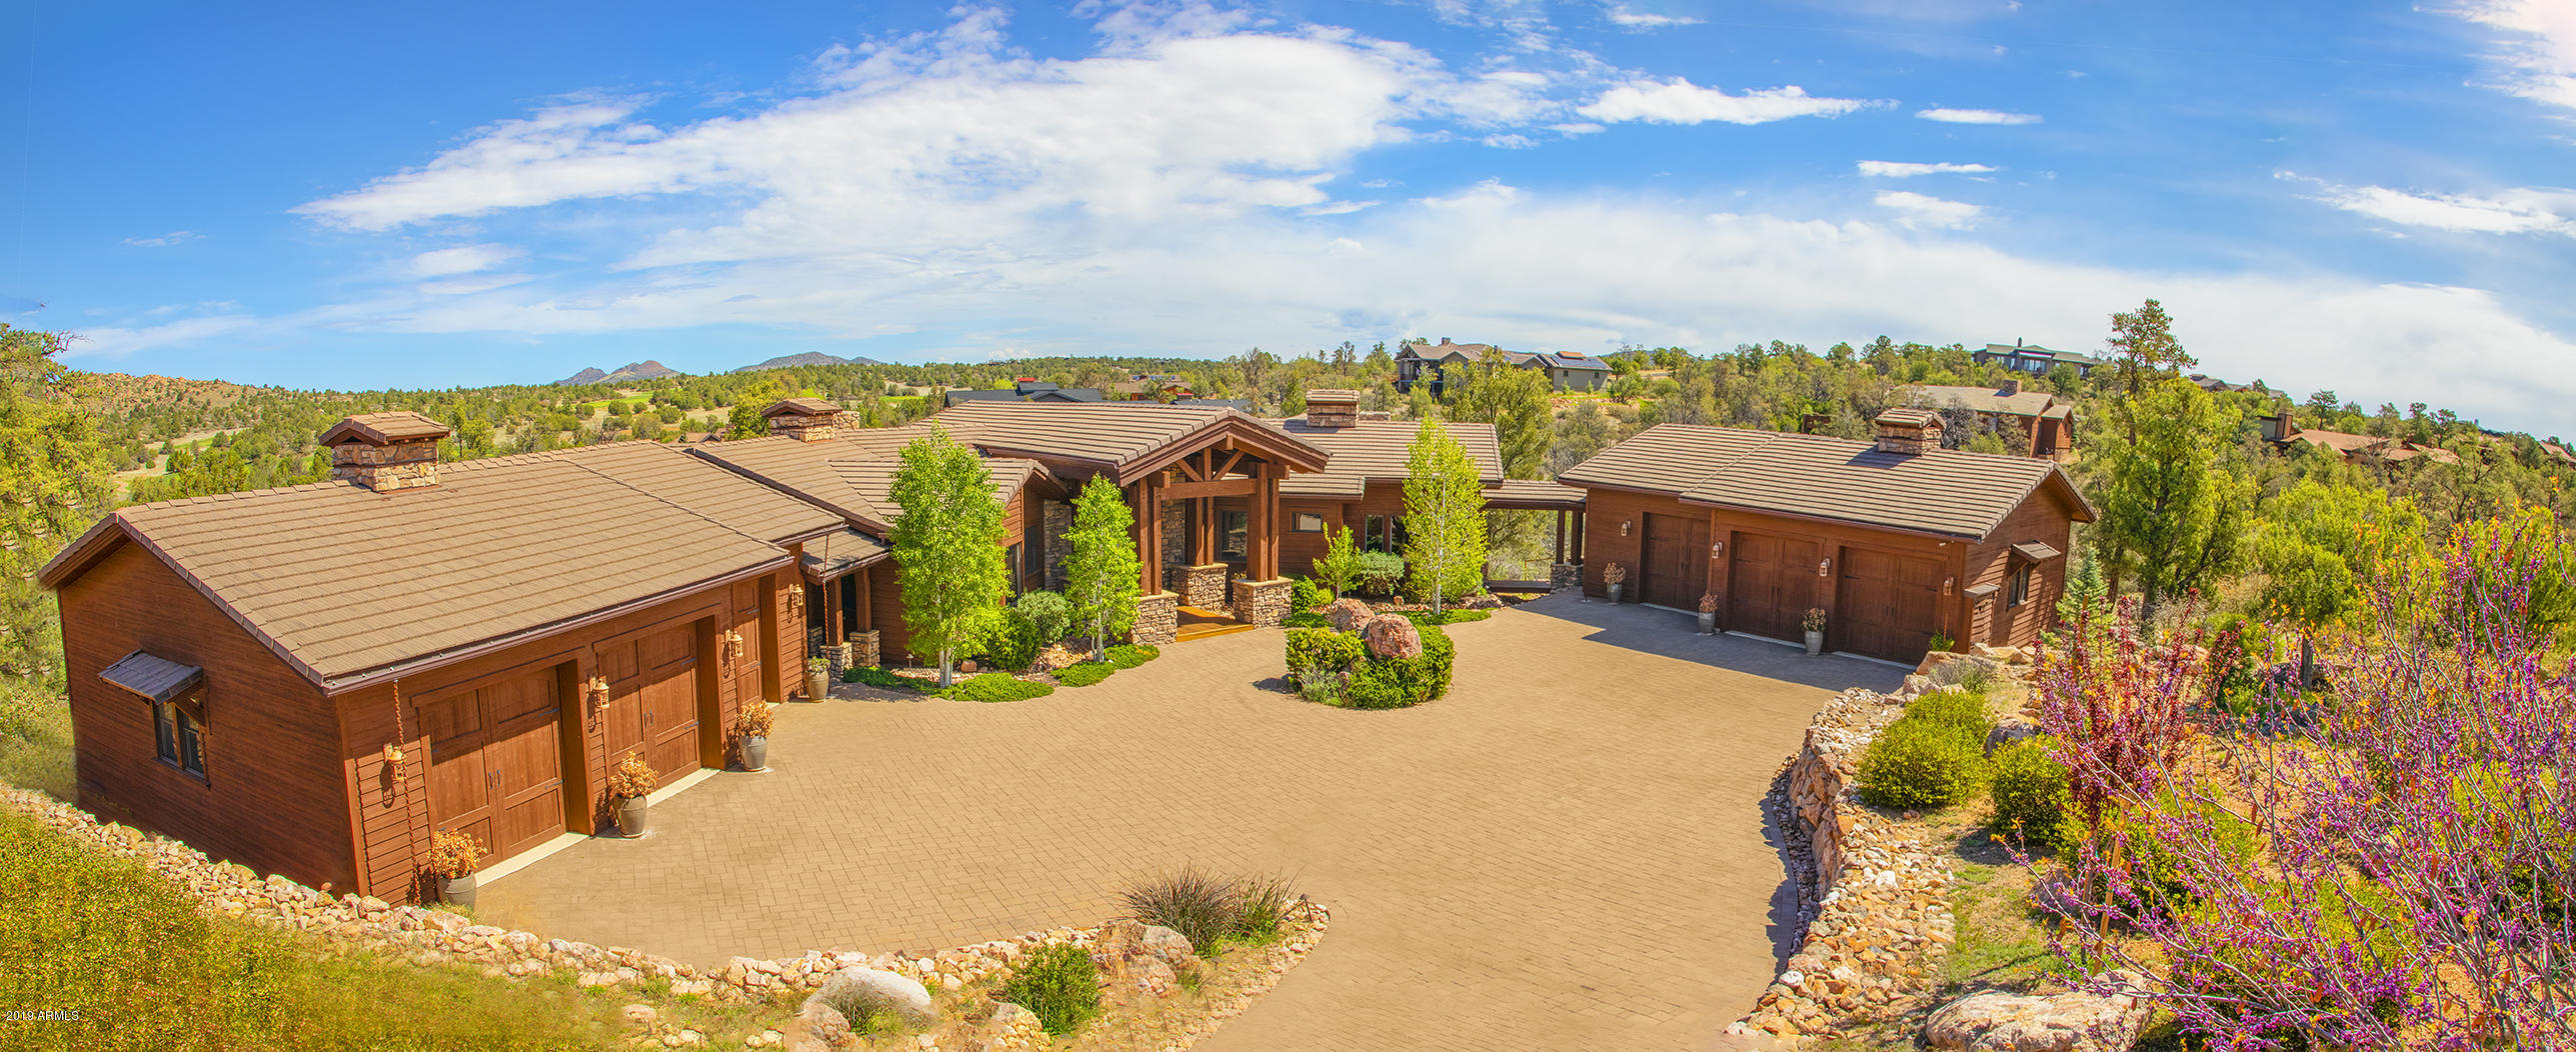 15175 N Four Mile Creek Lane, Prescott, Arizona